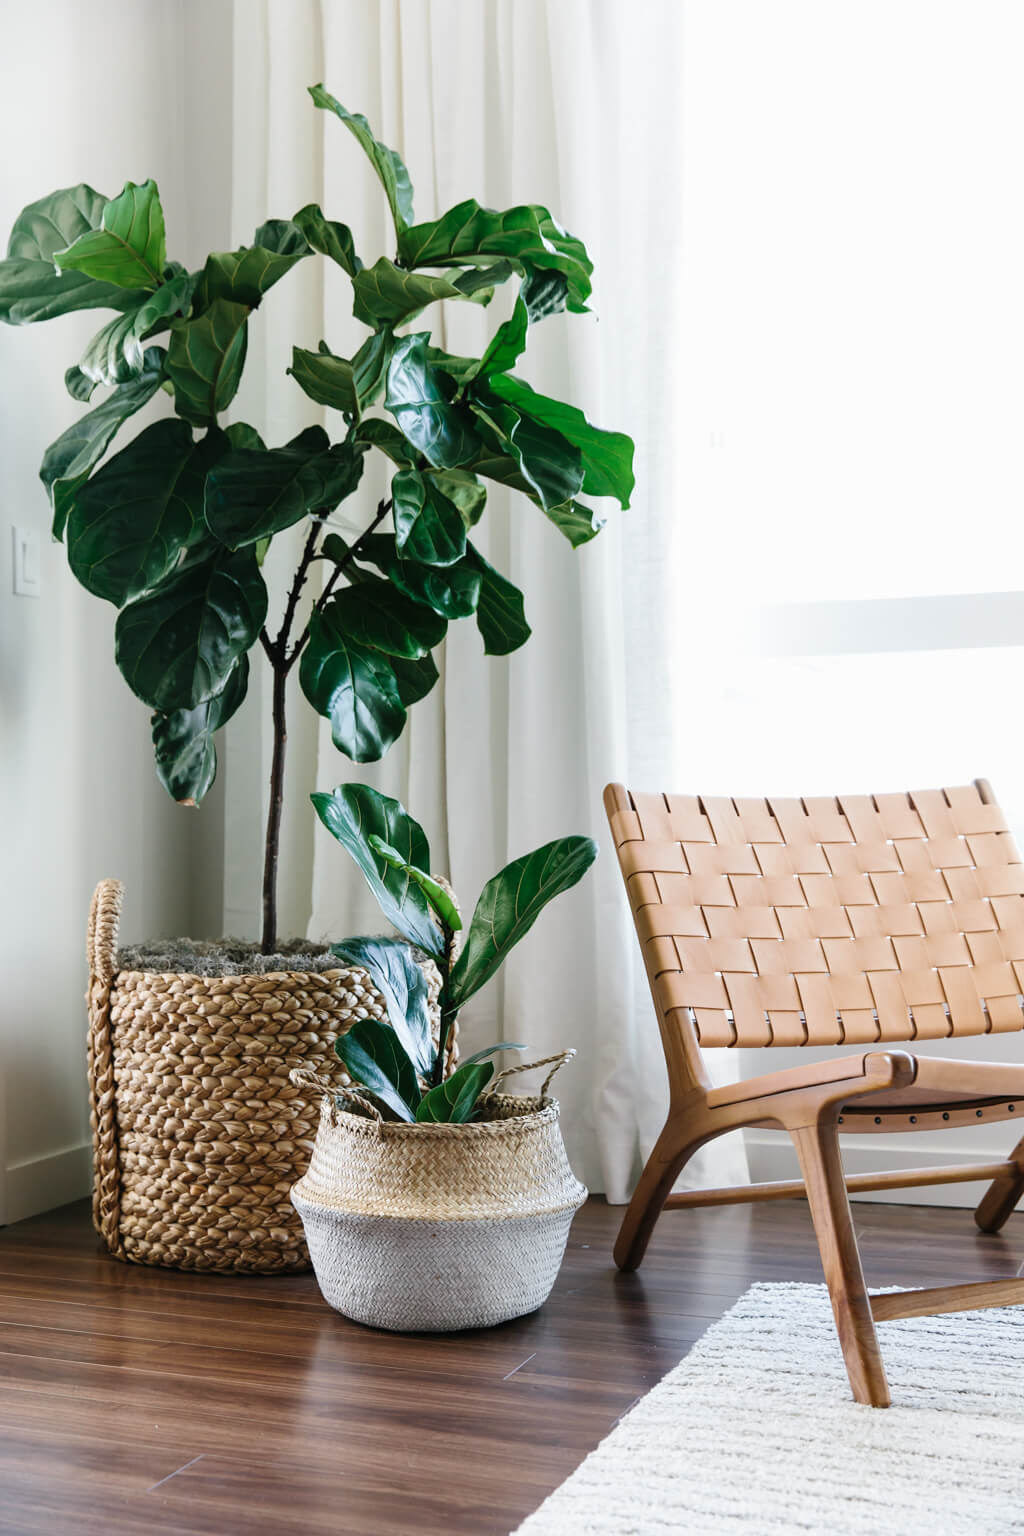 Big Plants For Living Room Designing My Modern And Minimalist Living Room With